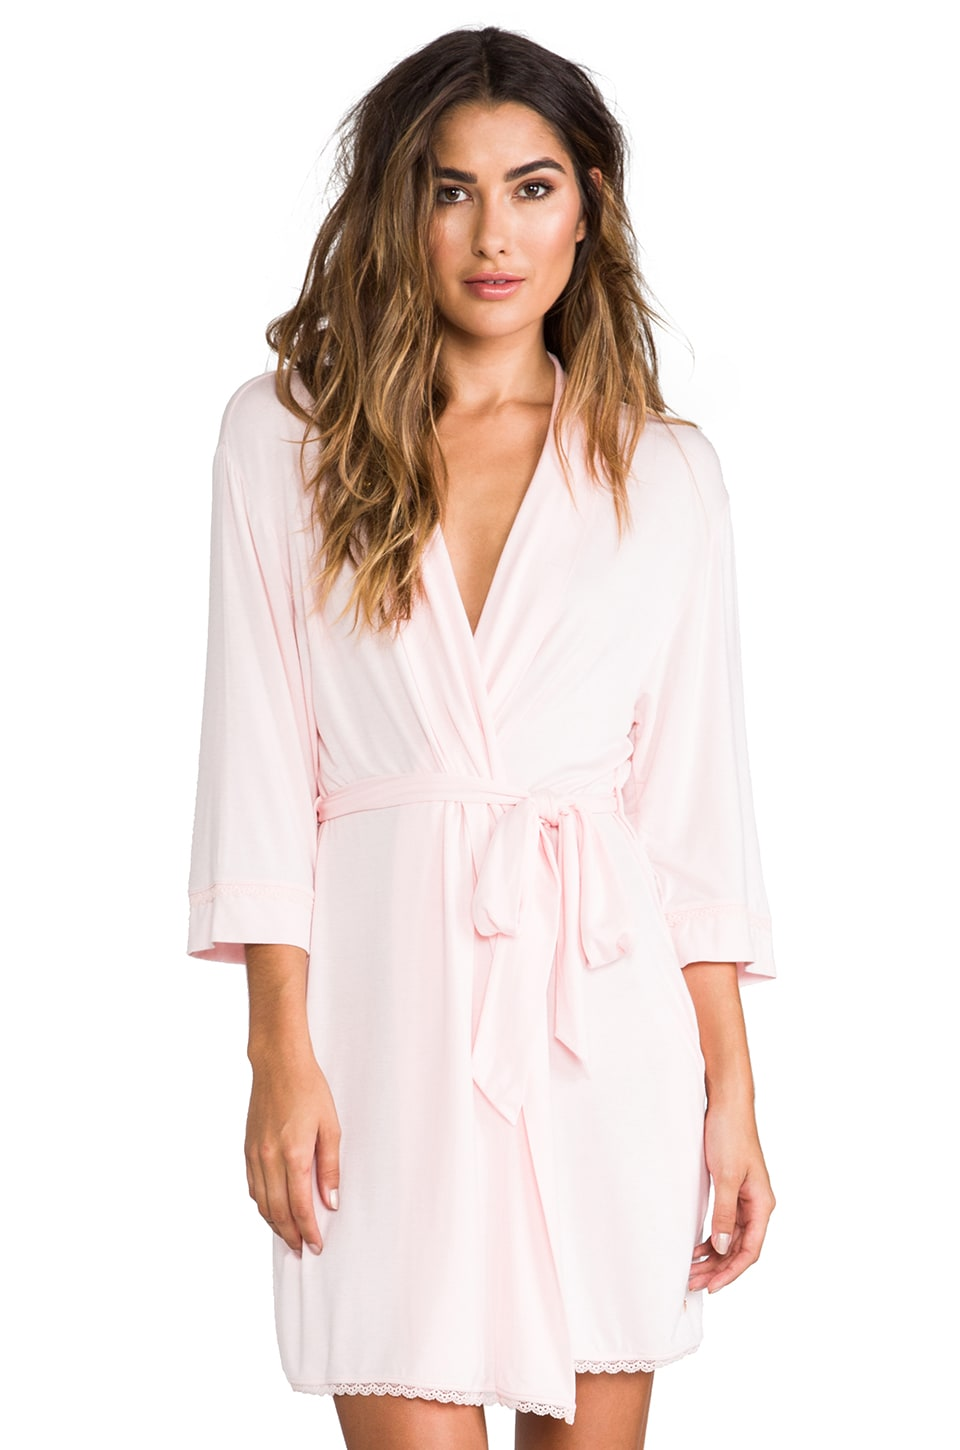 Juicy Couture Robe in Petal Pink